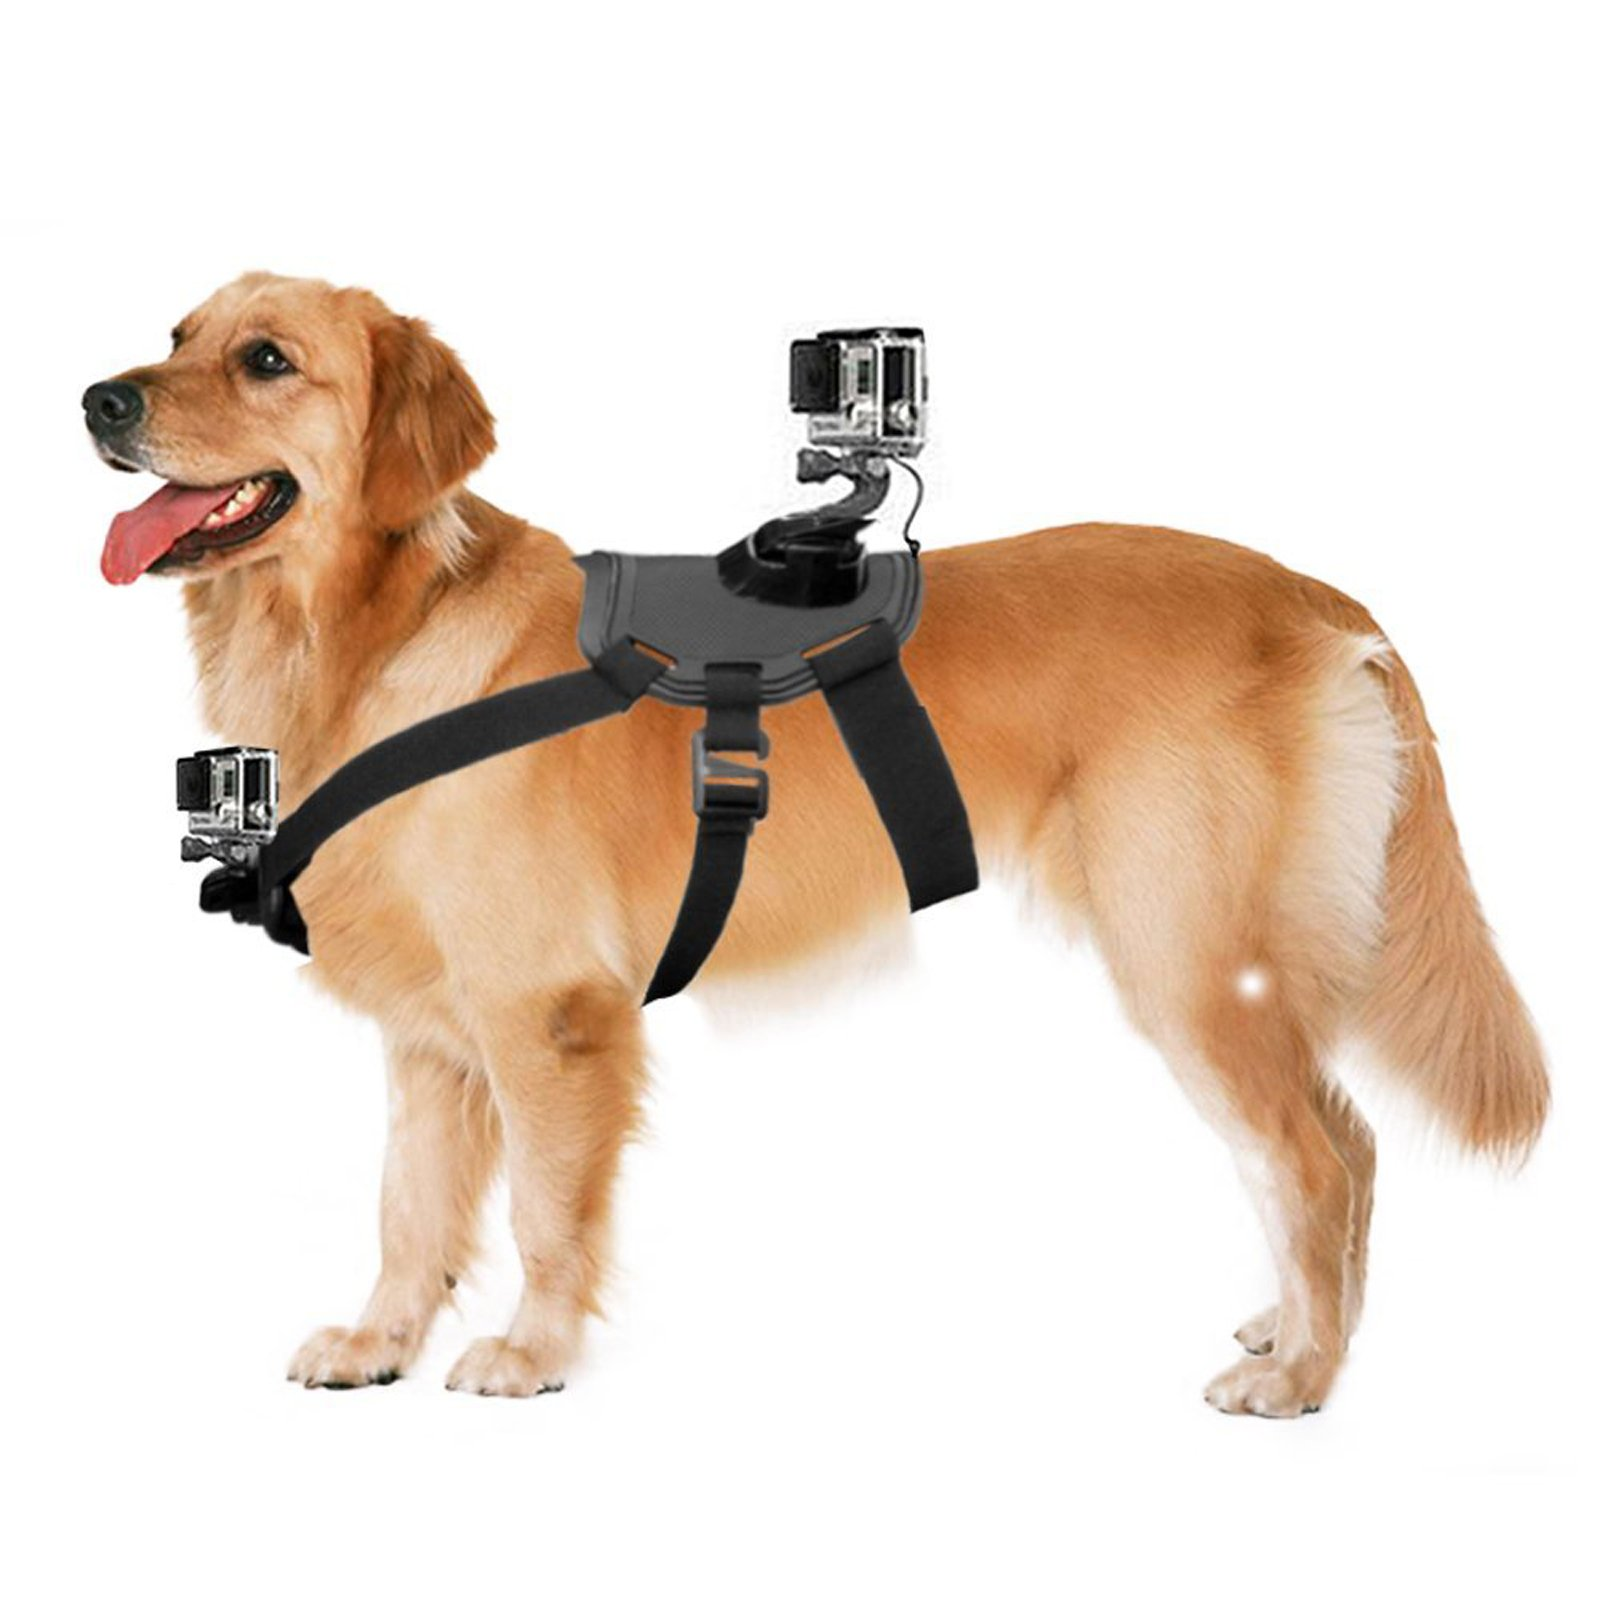 Dog Harness Back Mount For GoPro Hero 4/3+/3/2/1 SJCAM Sj5000+ Sj4000 Back And Chest With a Sports Camera Backpack Can Observe The World From The Dog's Vision For Medium And Large-size Dogs.